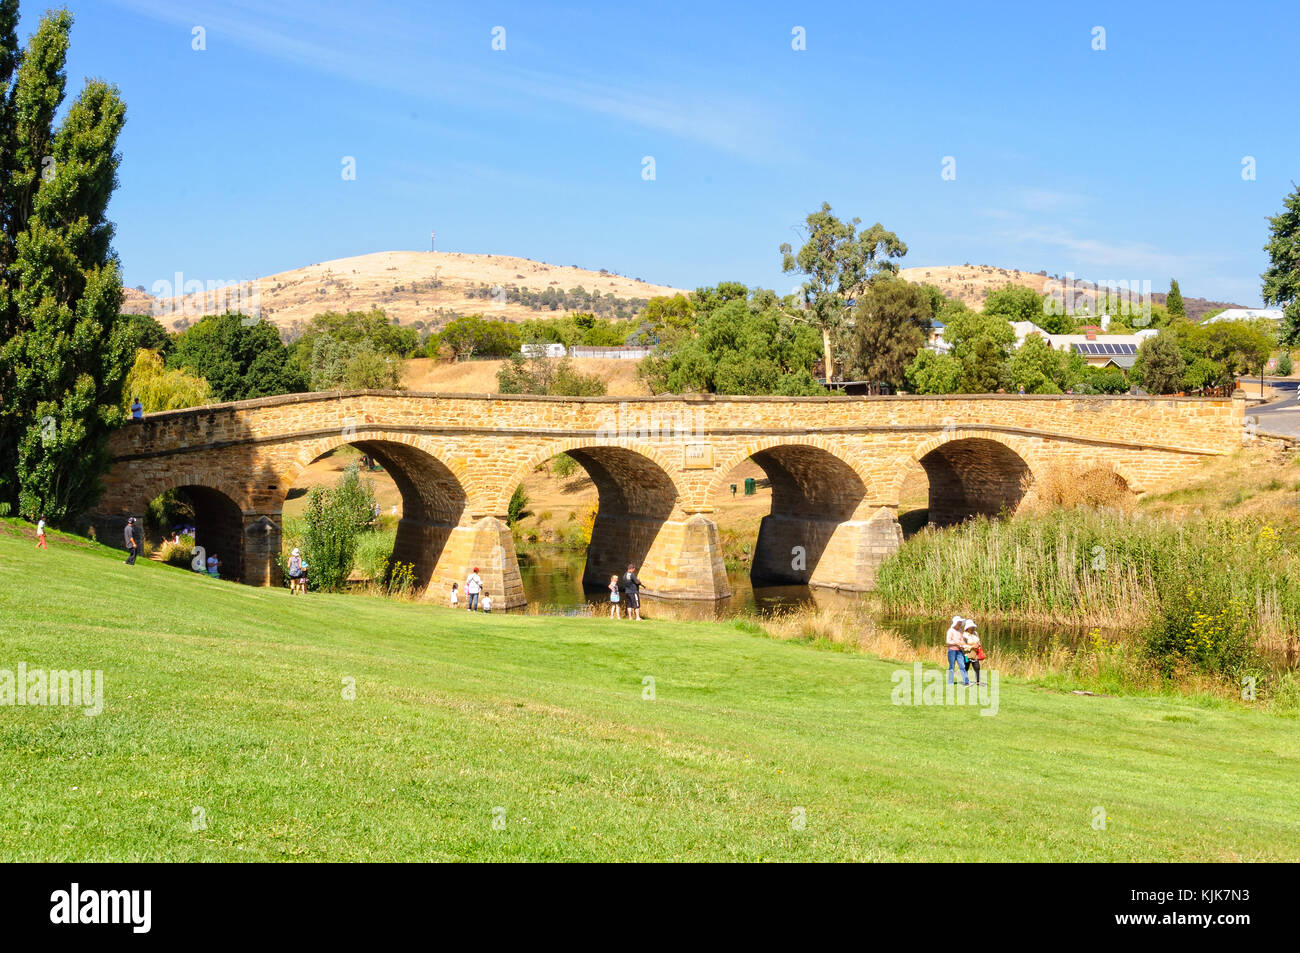 Richmond Bridge, built by convicts in  the 1820s, is the oldest surviving stone span bridge in Australia - Richmond, - Stock Image